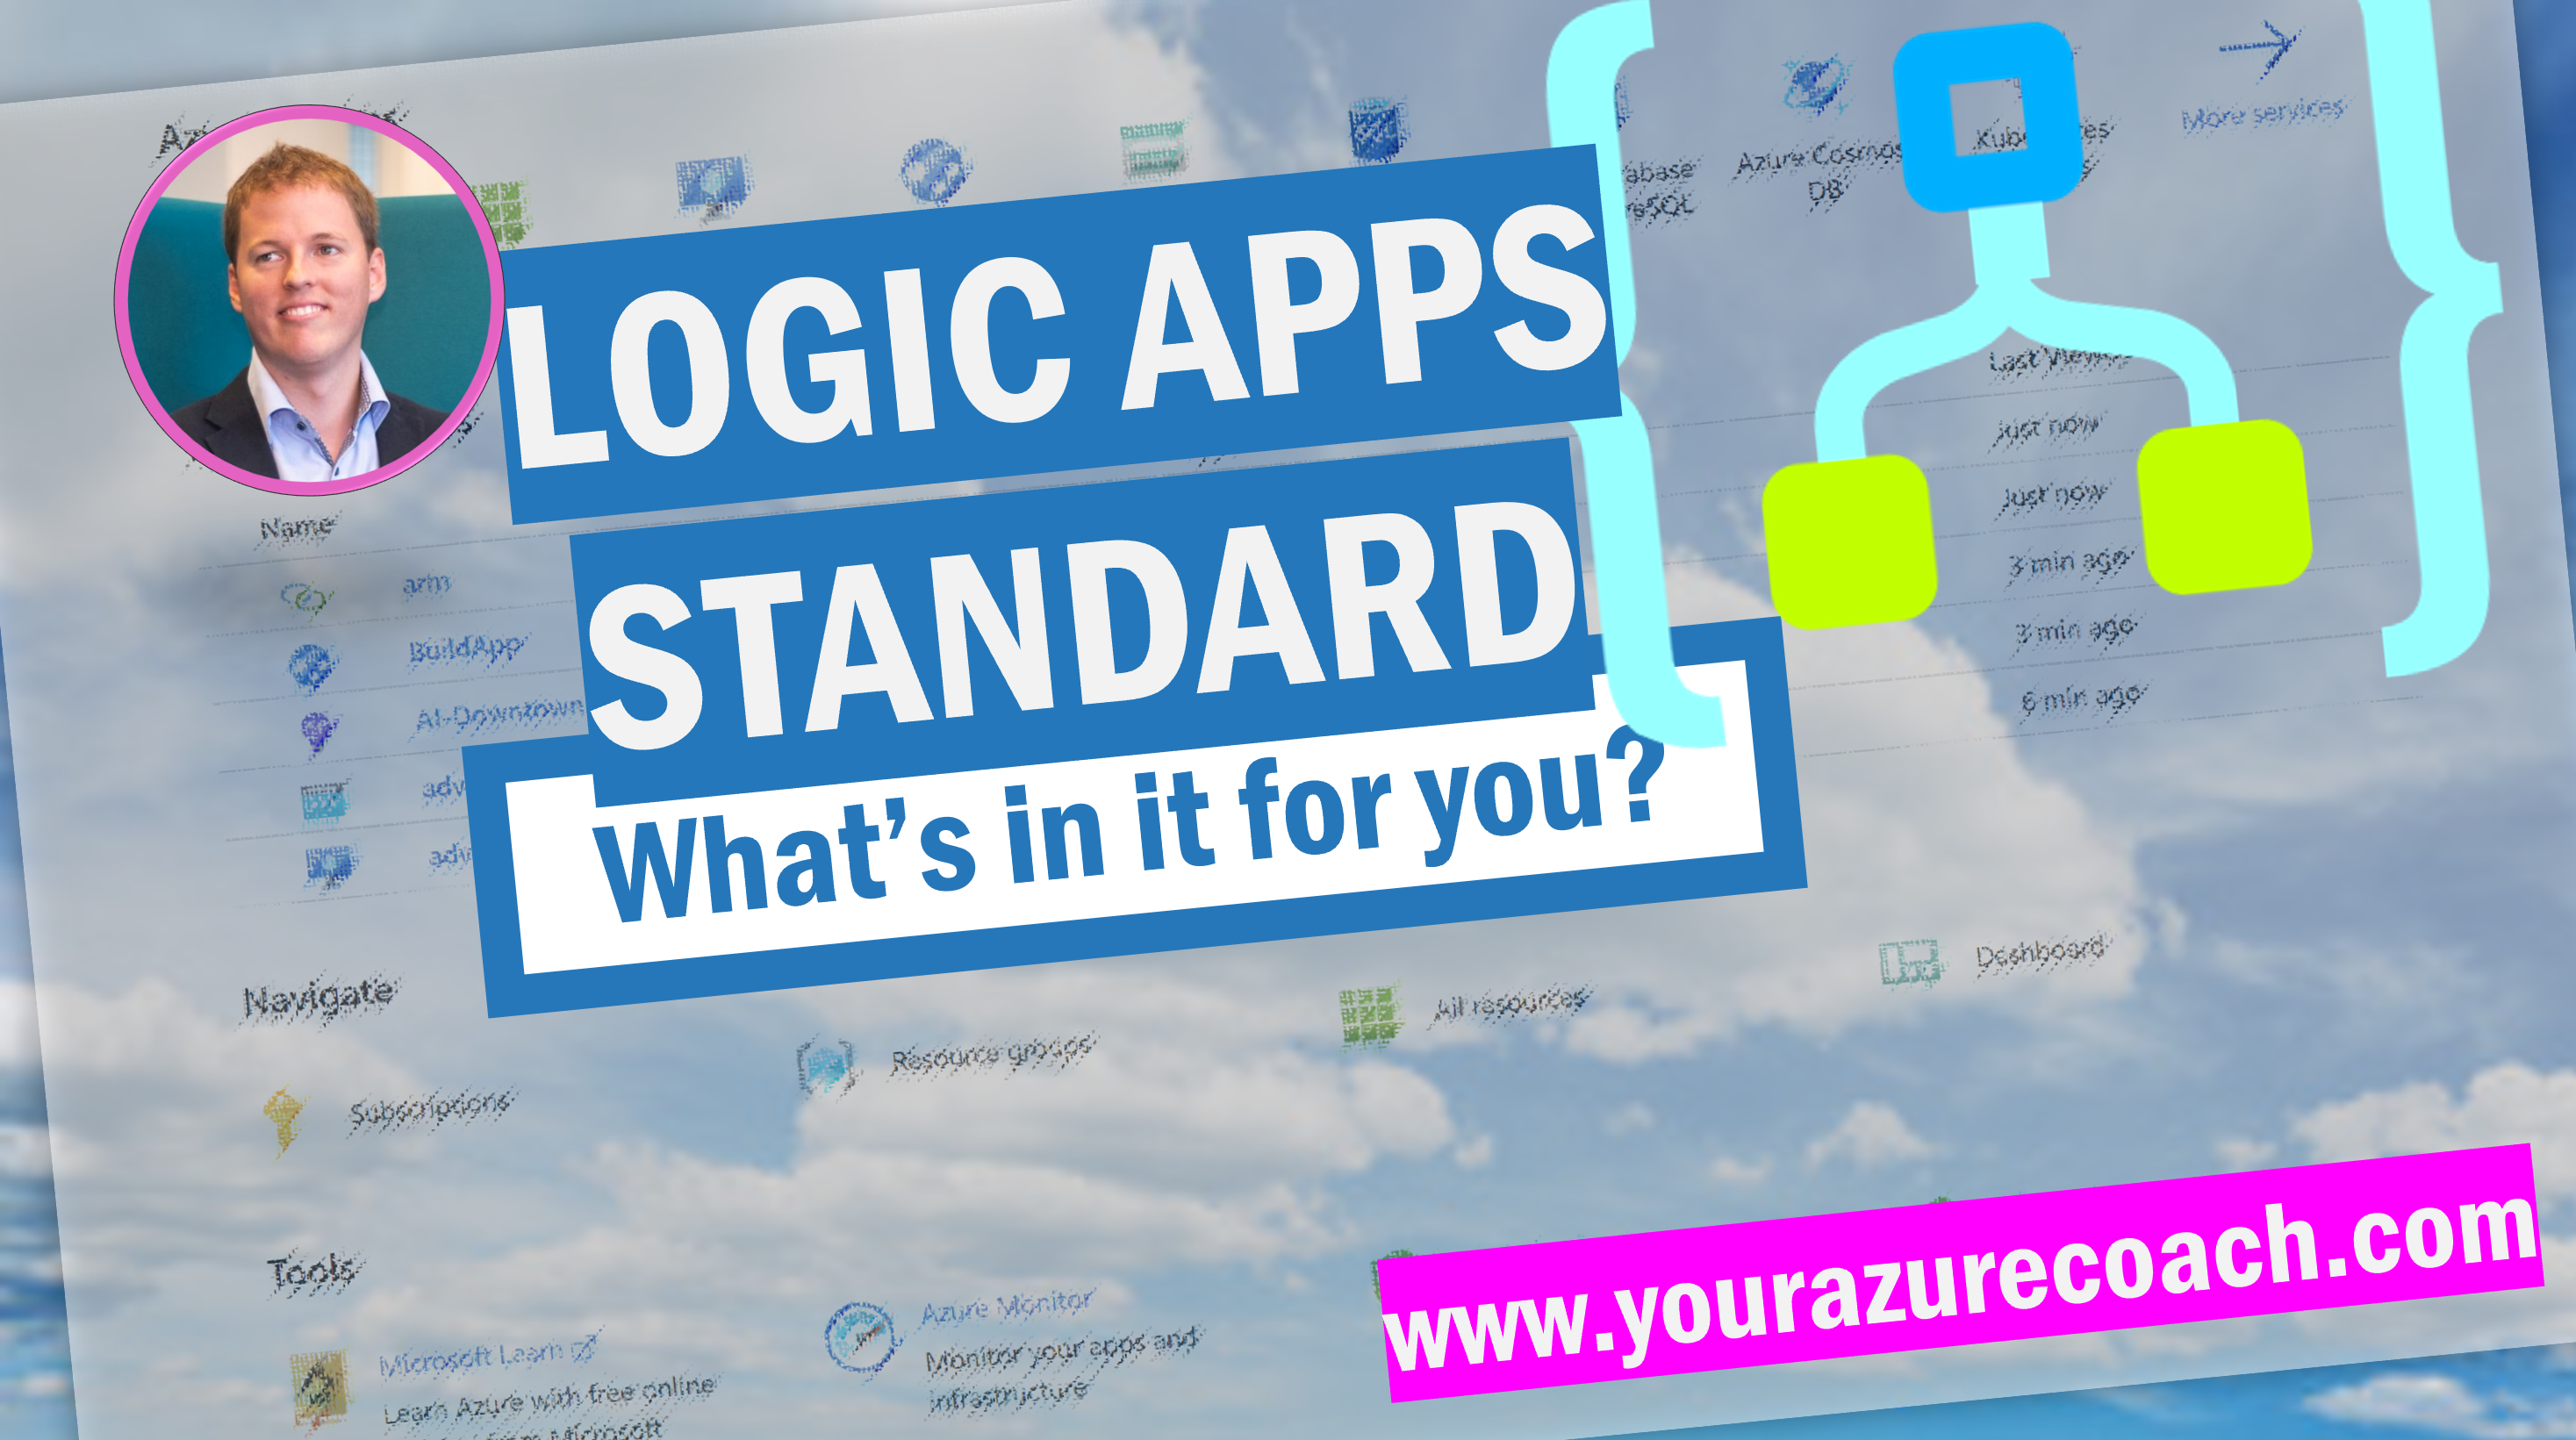 Logic Apps Standard: what's in it for you?